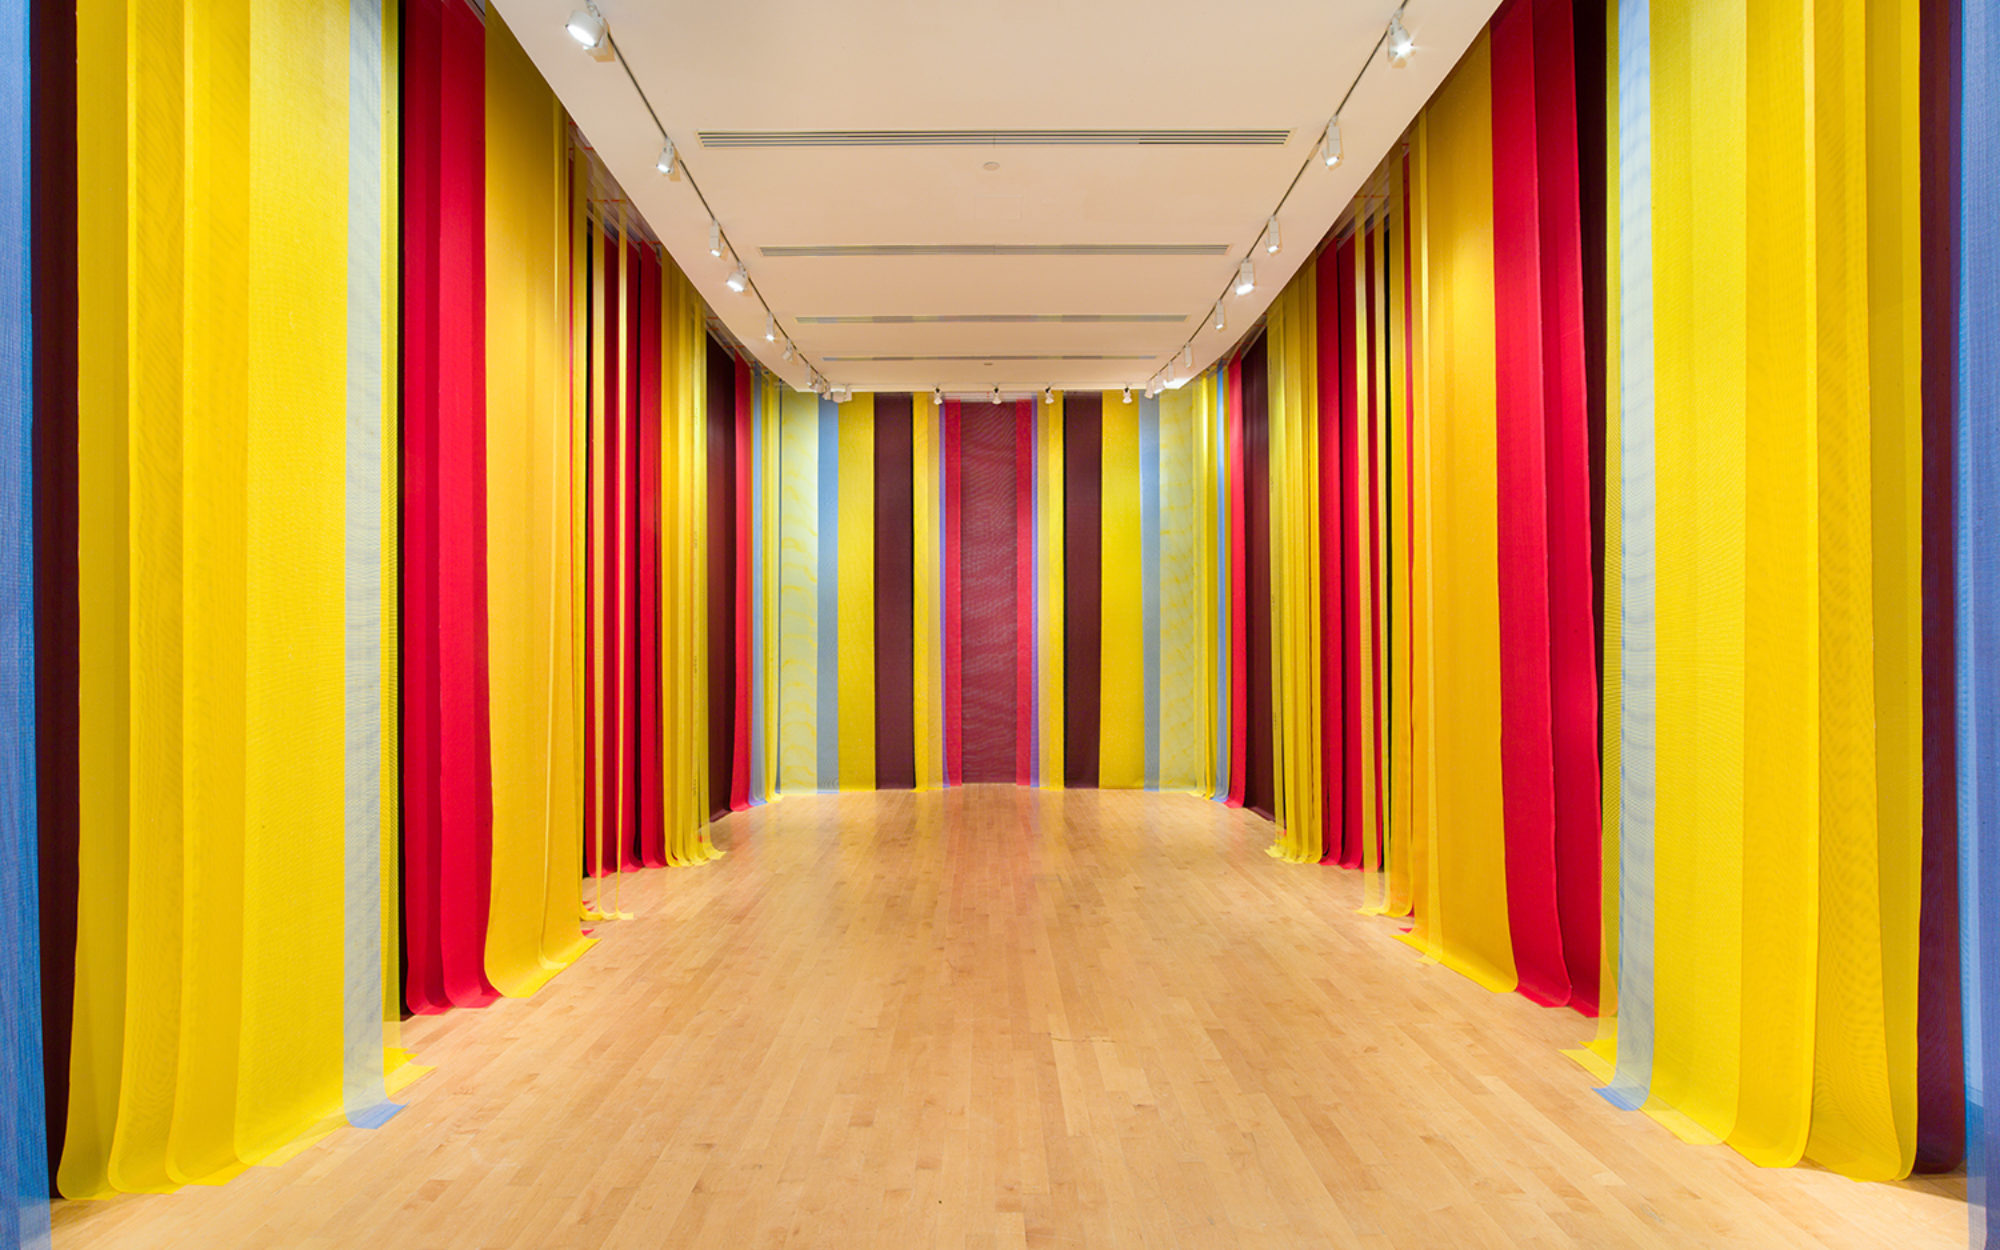 Eva LeWitt installation view at The Aldrich Contemporary Art Museum